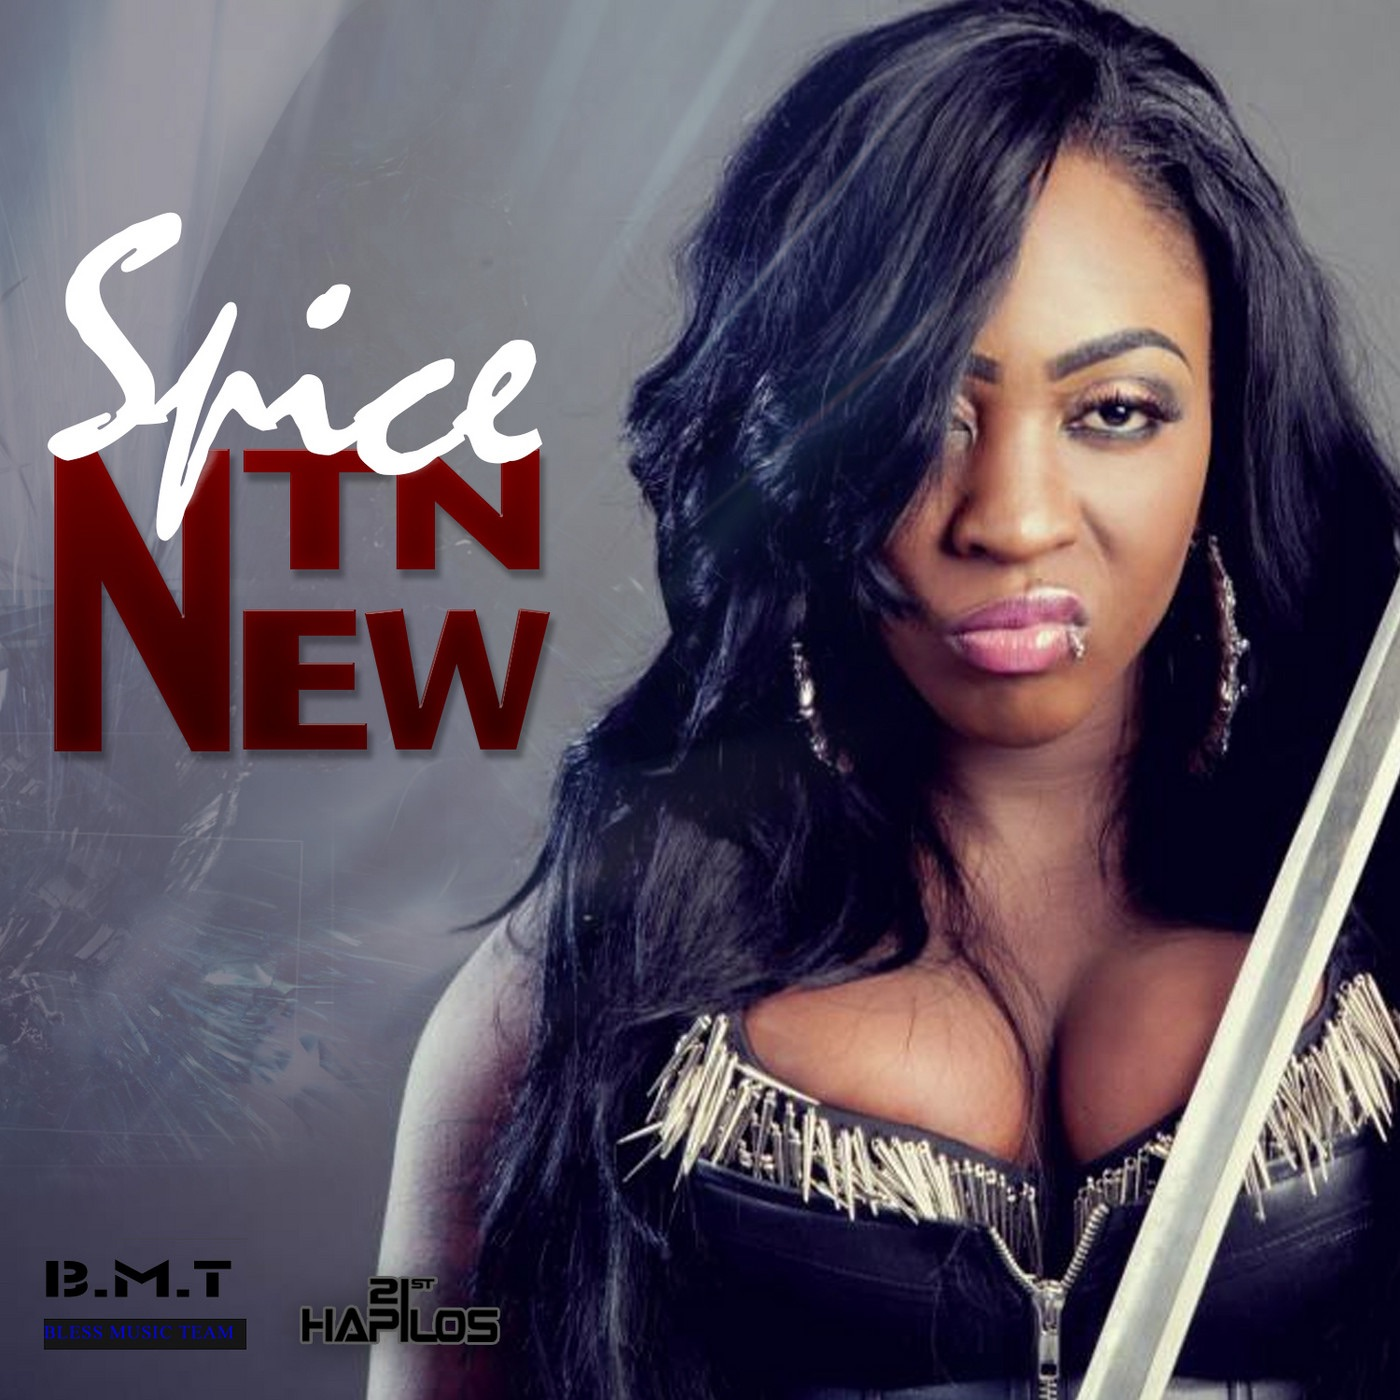 NTN New - Single